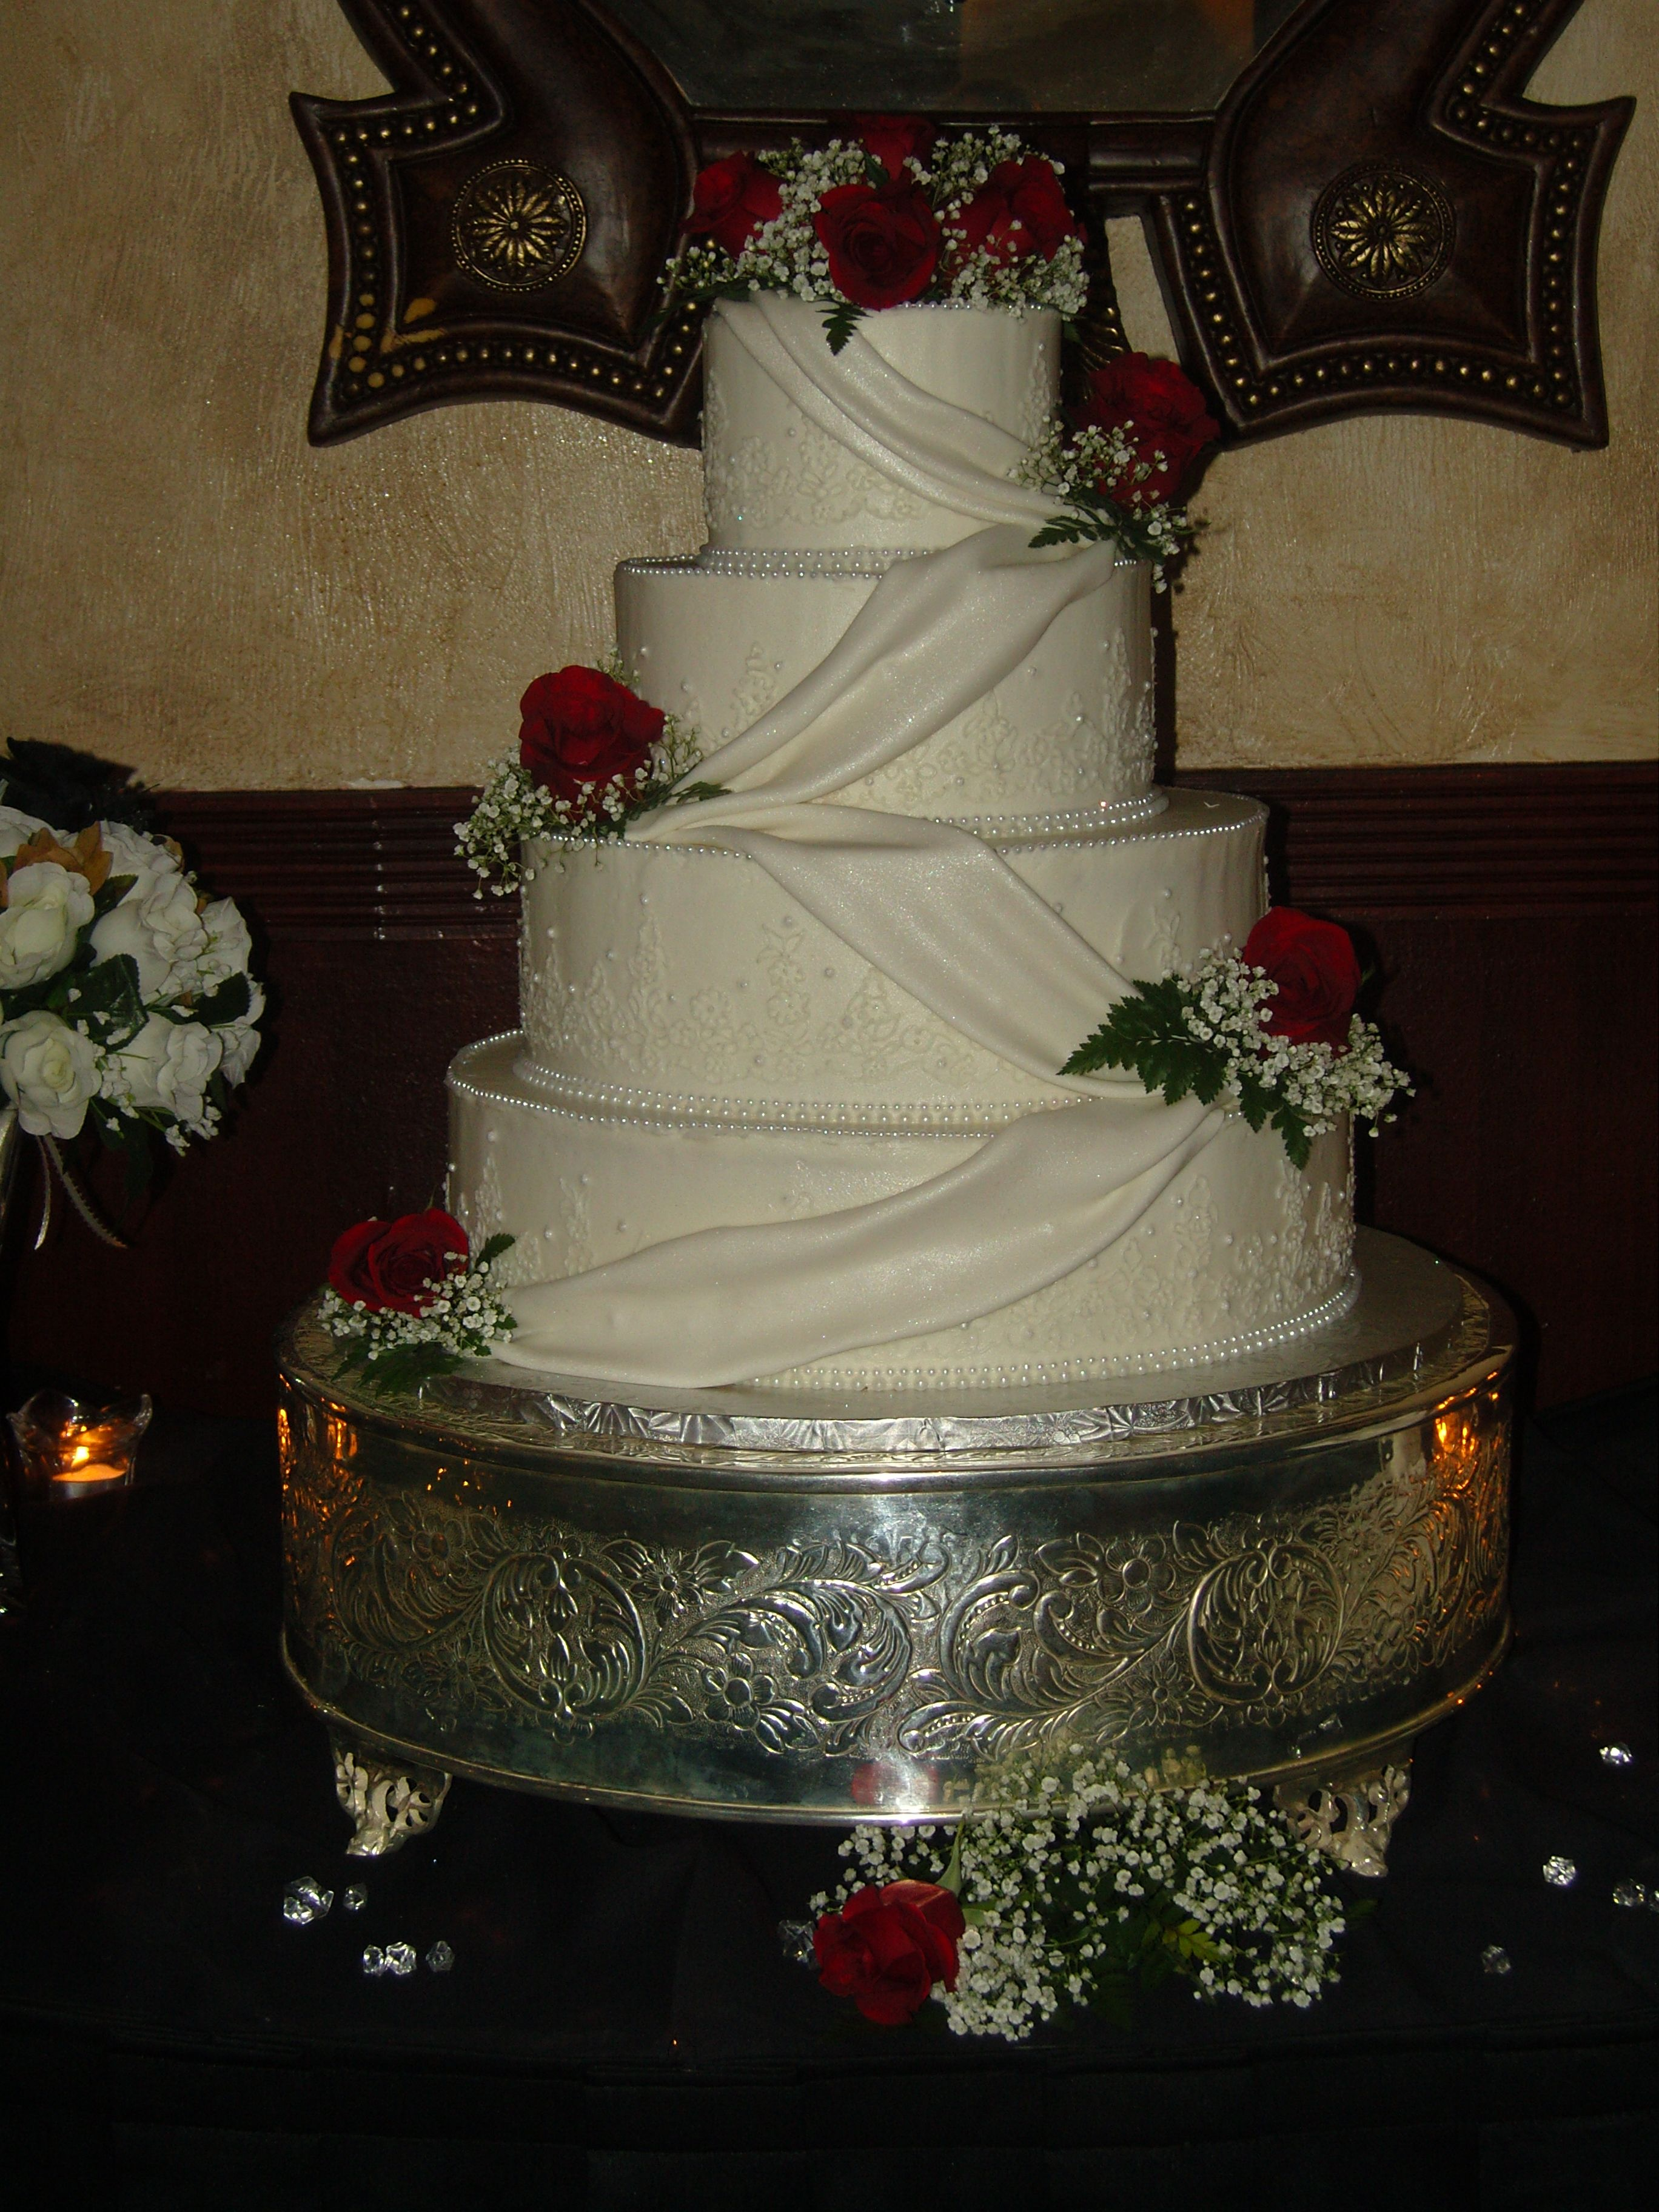 Doris s Wedding Cake buttercream icing lace design with